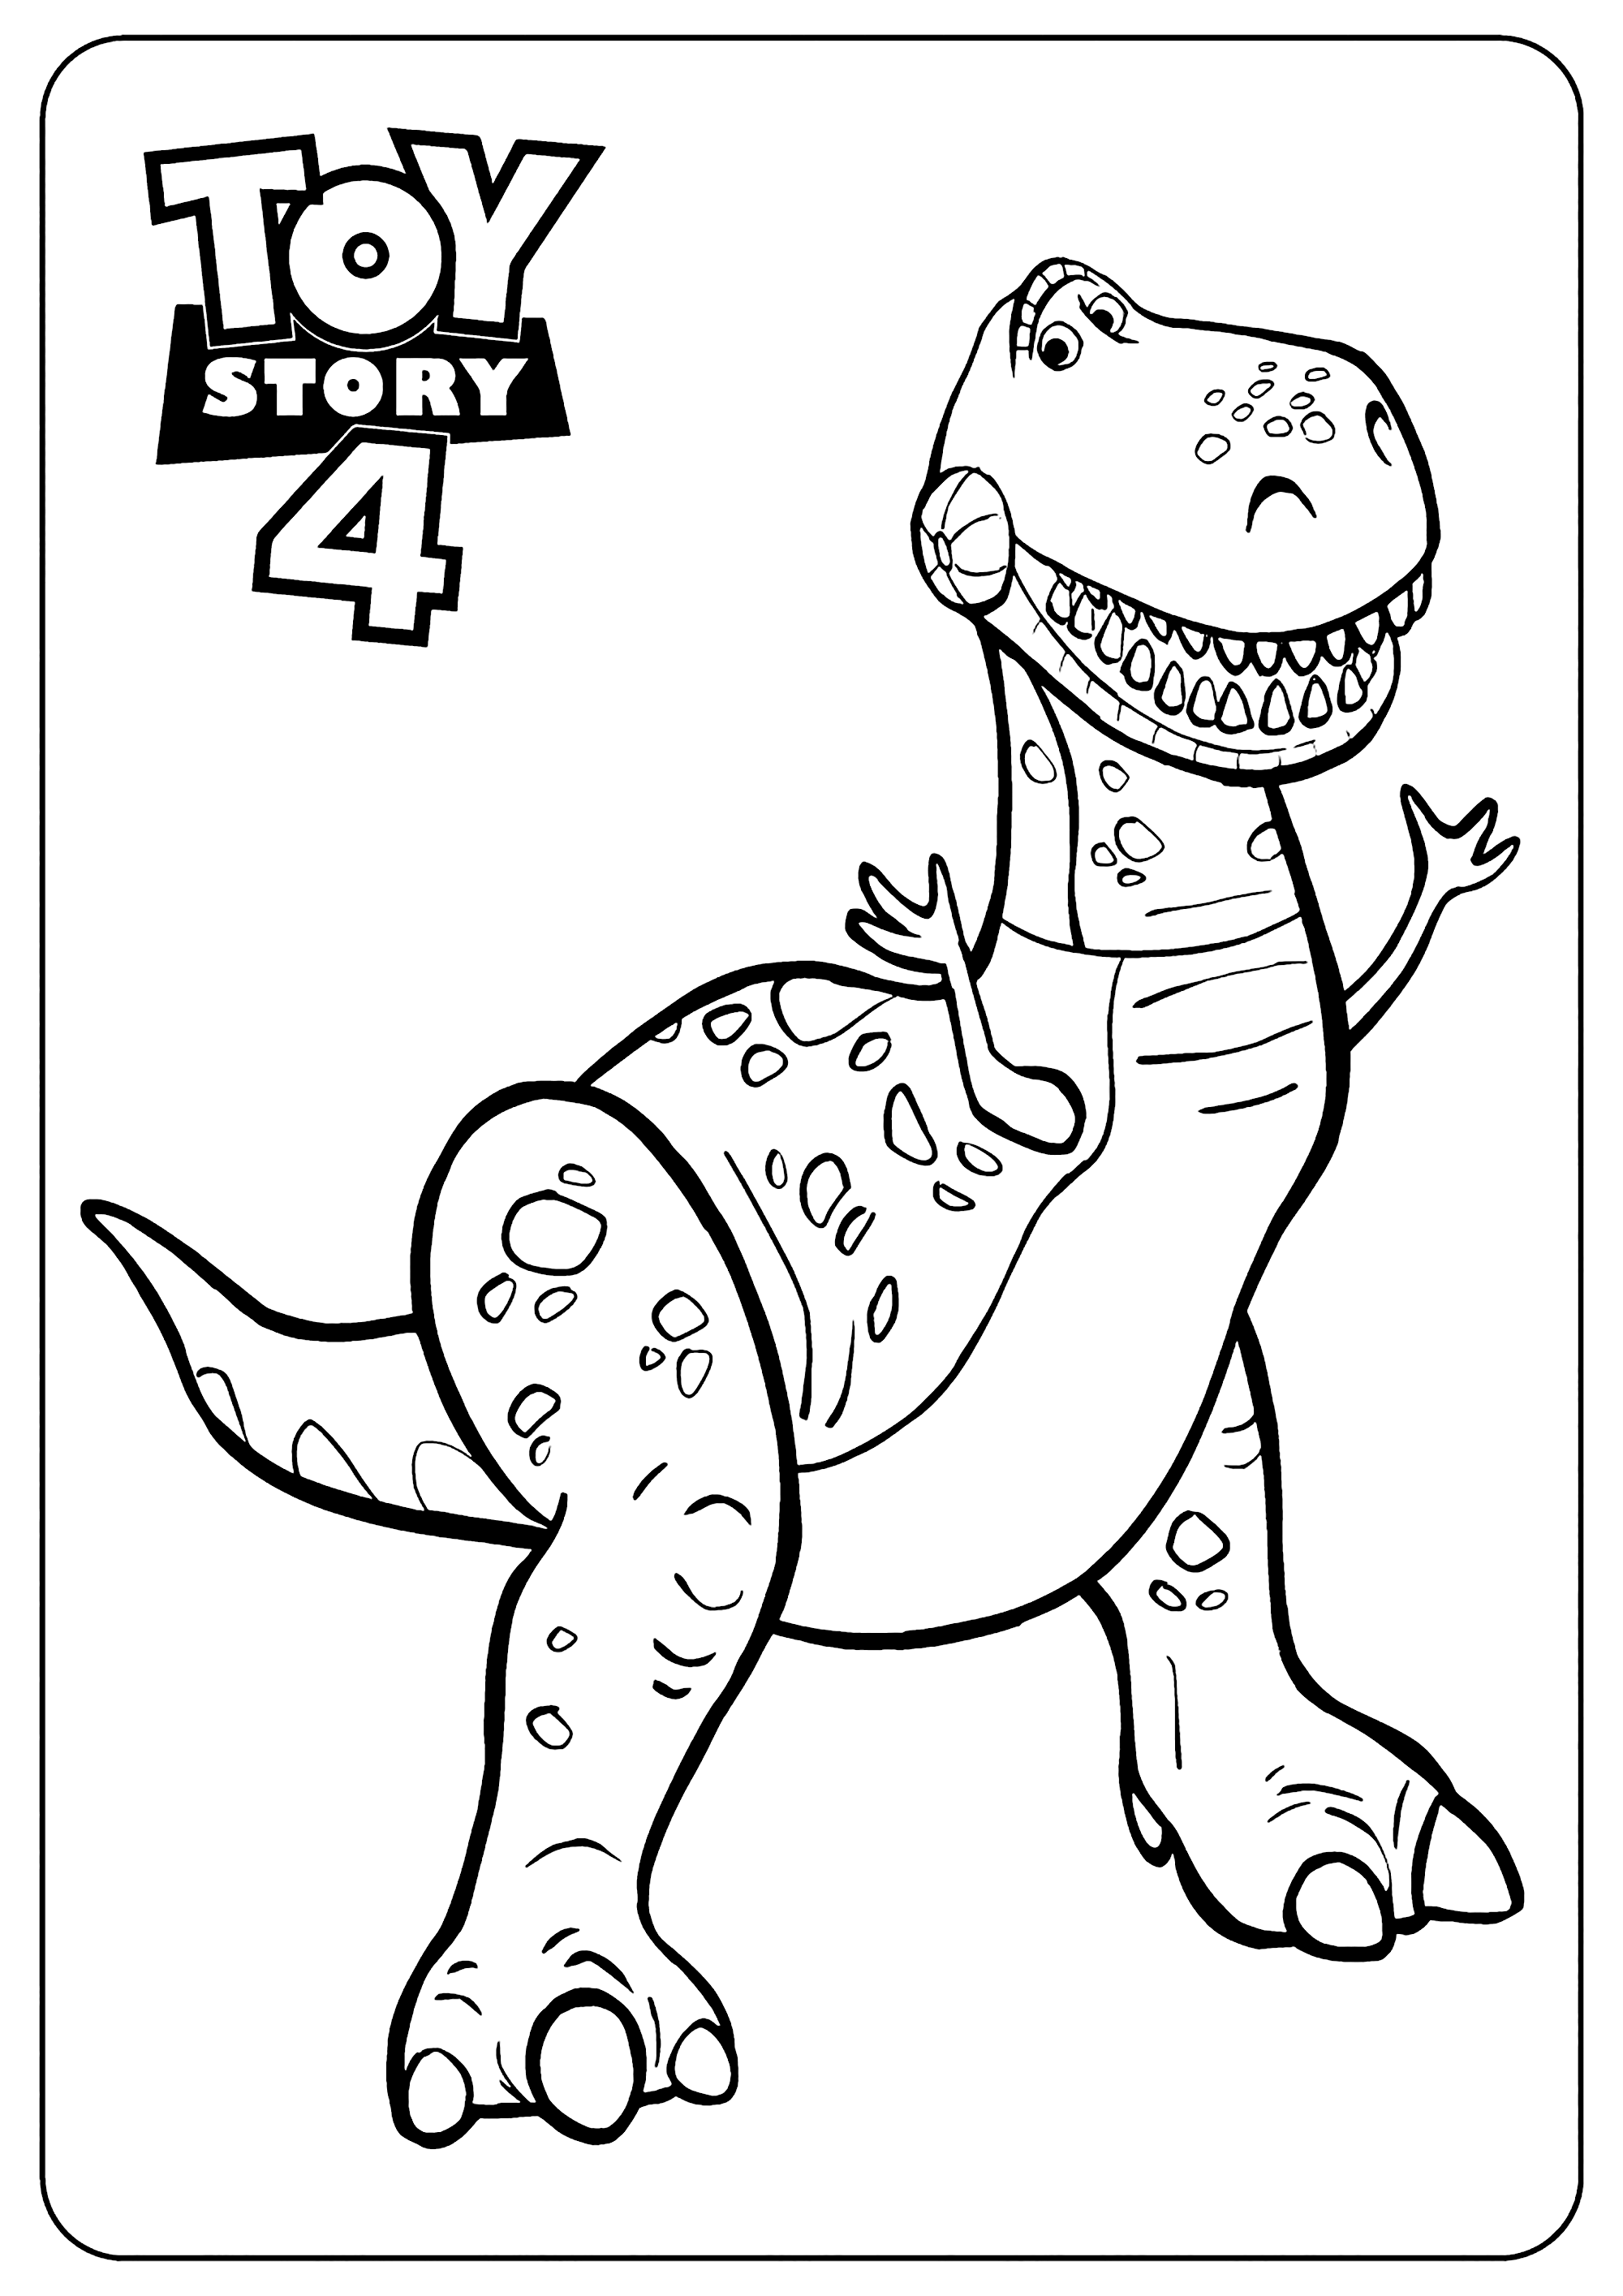 Rex : Cool Toy Story 4 coloring pages - Toy Story 4 Kids ...